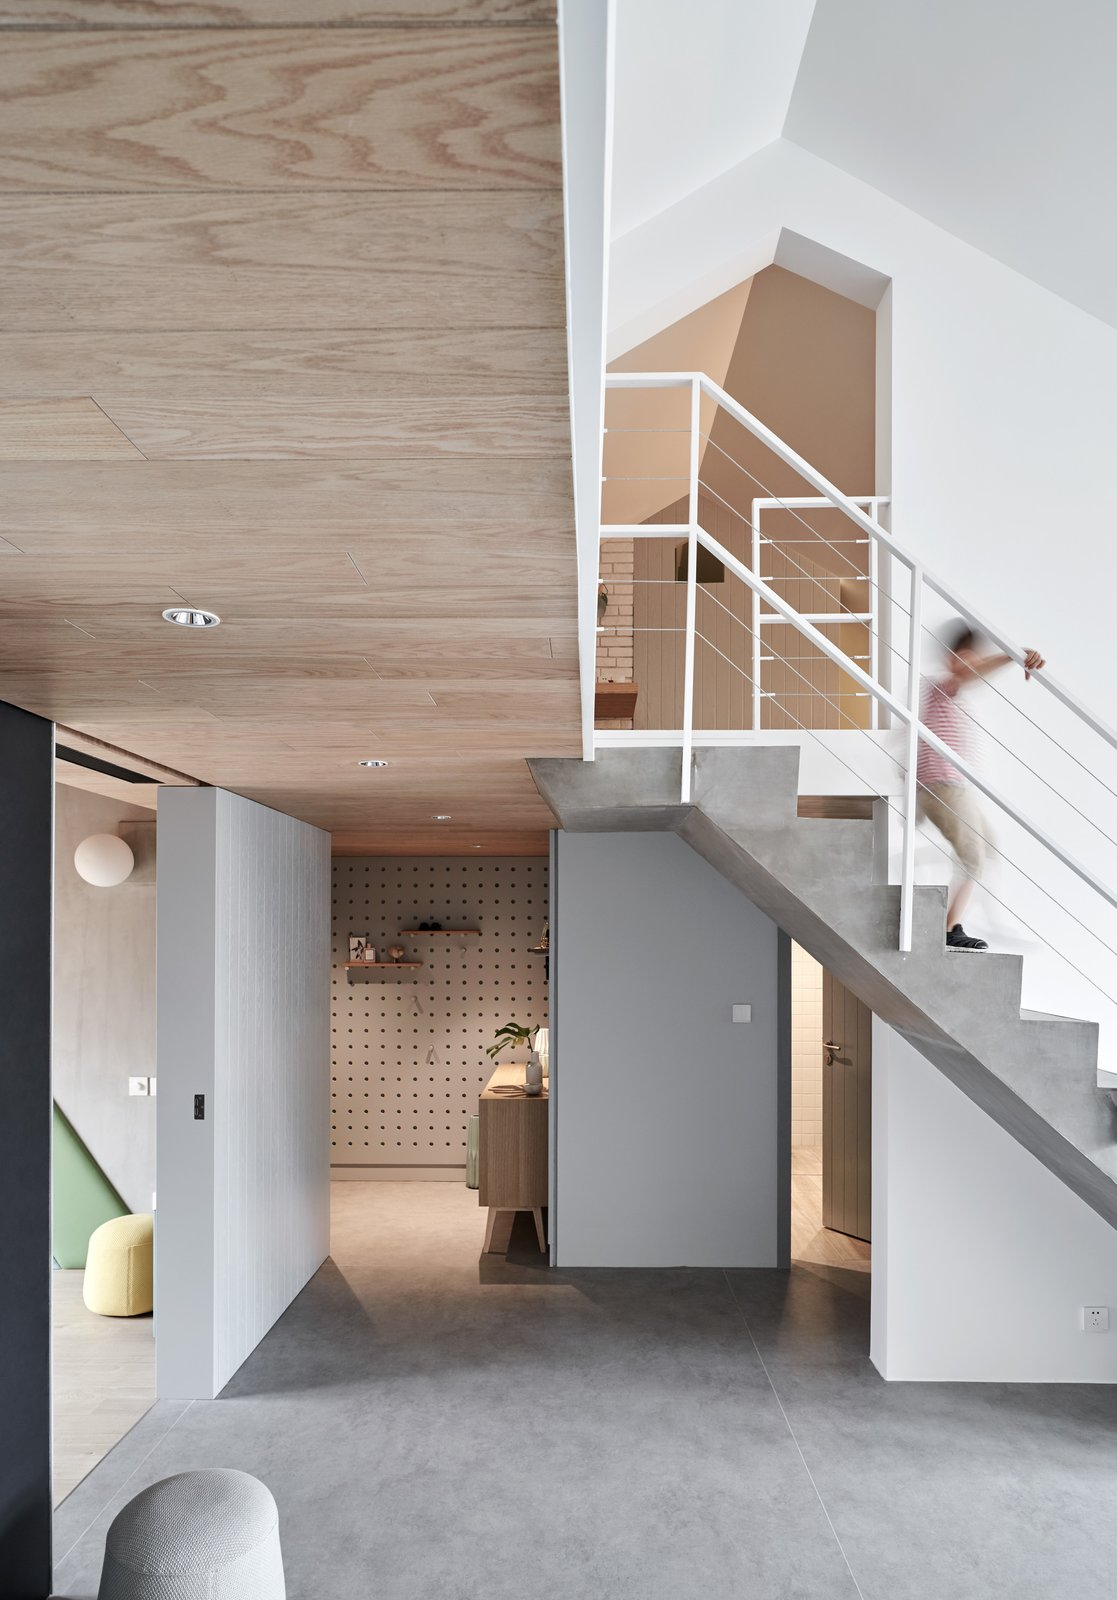 Hallway and Concrete Floor The open sliding doors of the kitchen and children's room can flexibly stretch the space, and when fully opened, improve circulation.    Photos from A Loft Mezzanine Cleverly Enlarges This Small Beijing Flat